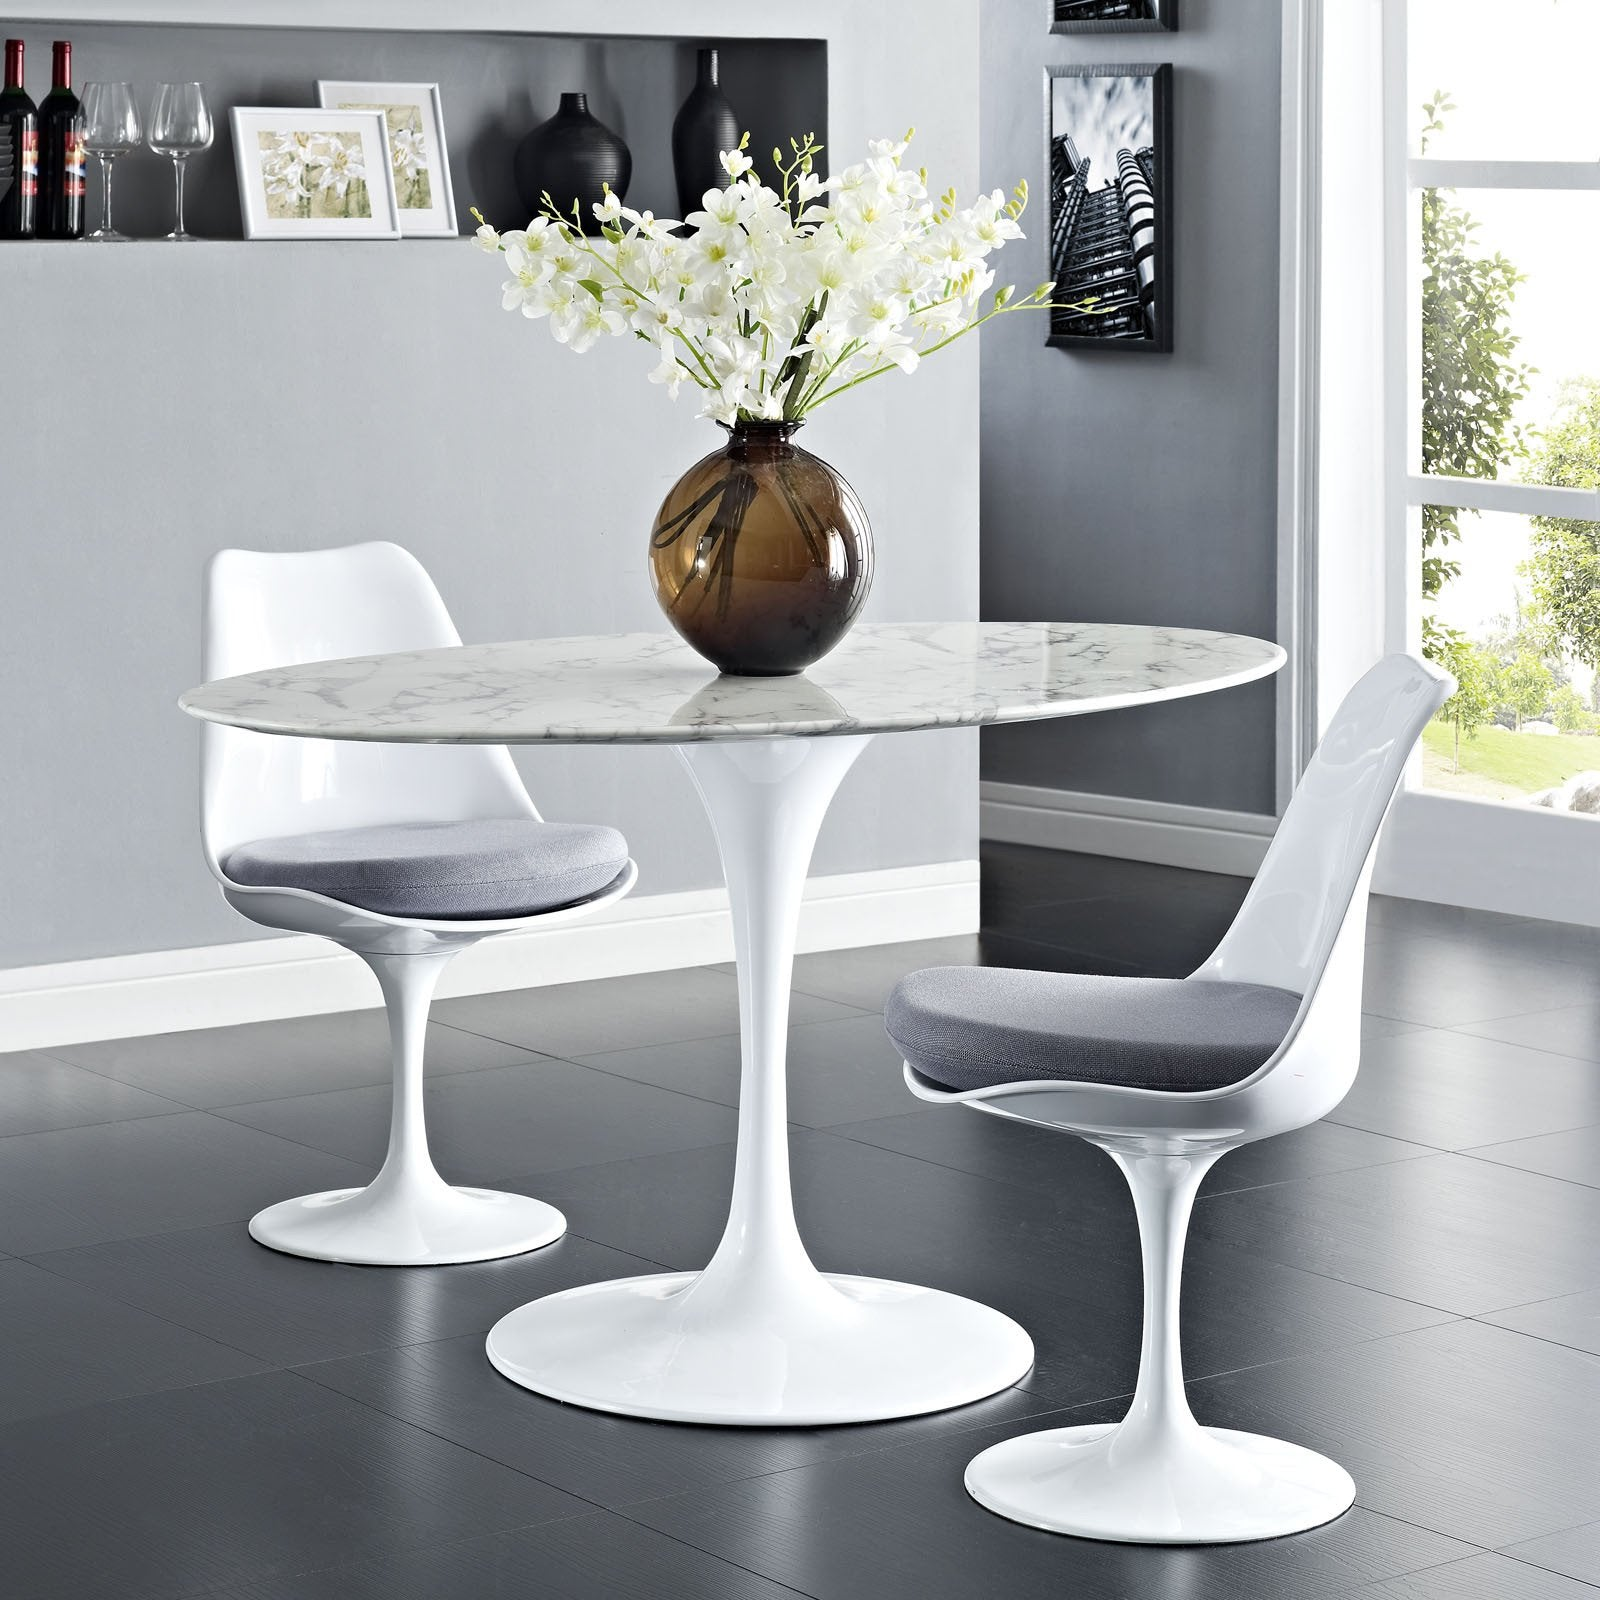 Oval marble dining table - Tulip Style 54 Oval Marble Dining Table 54 Emfurn 1